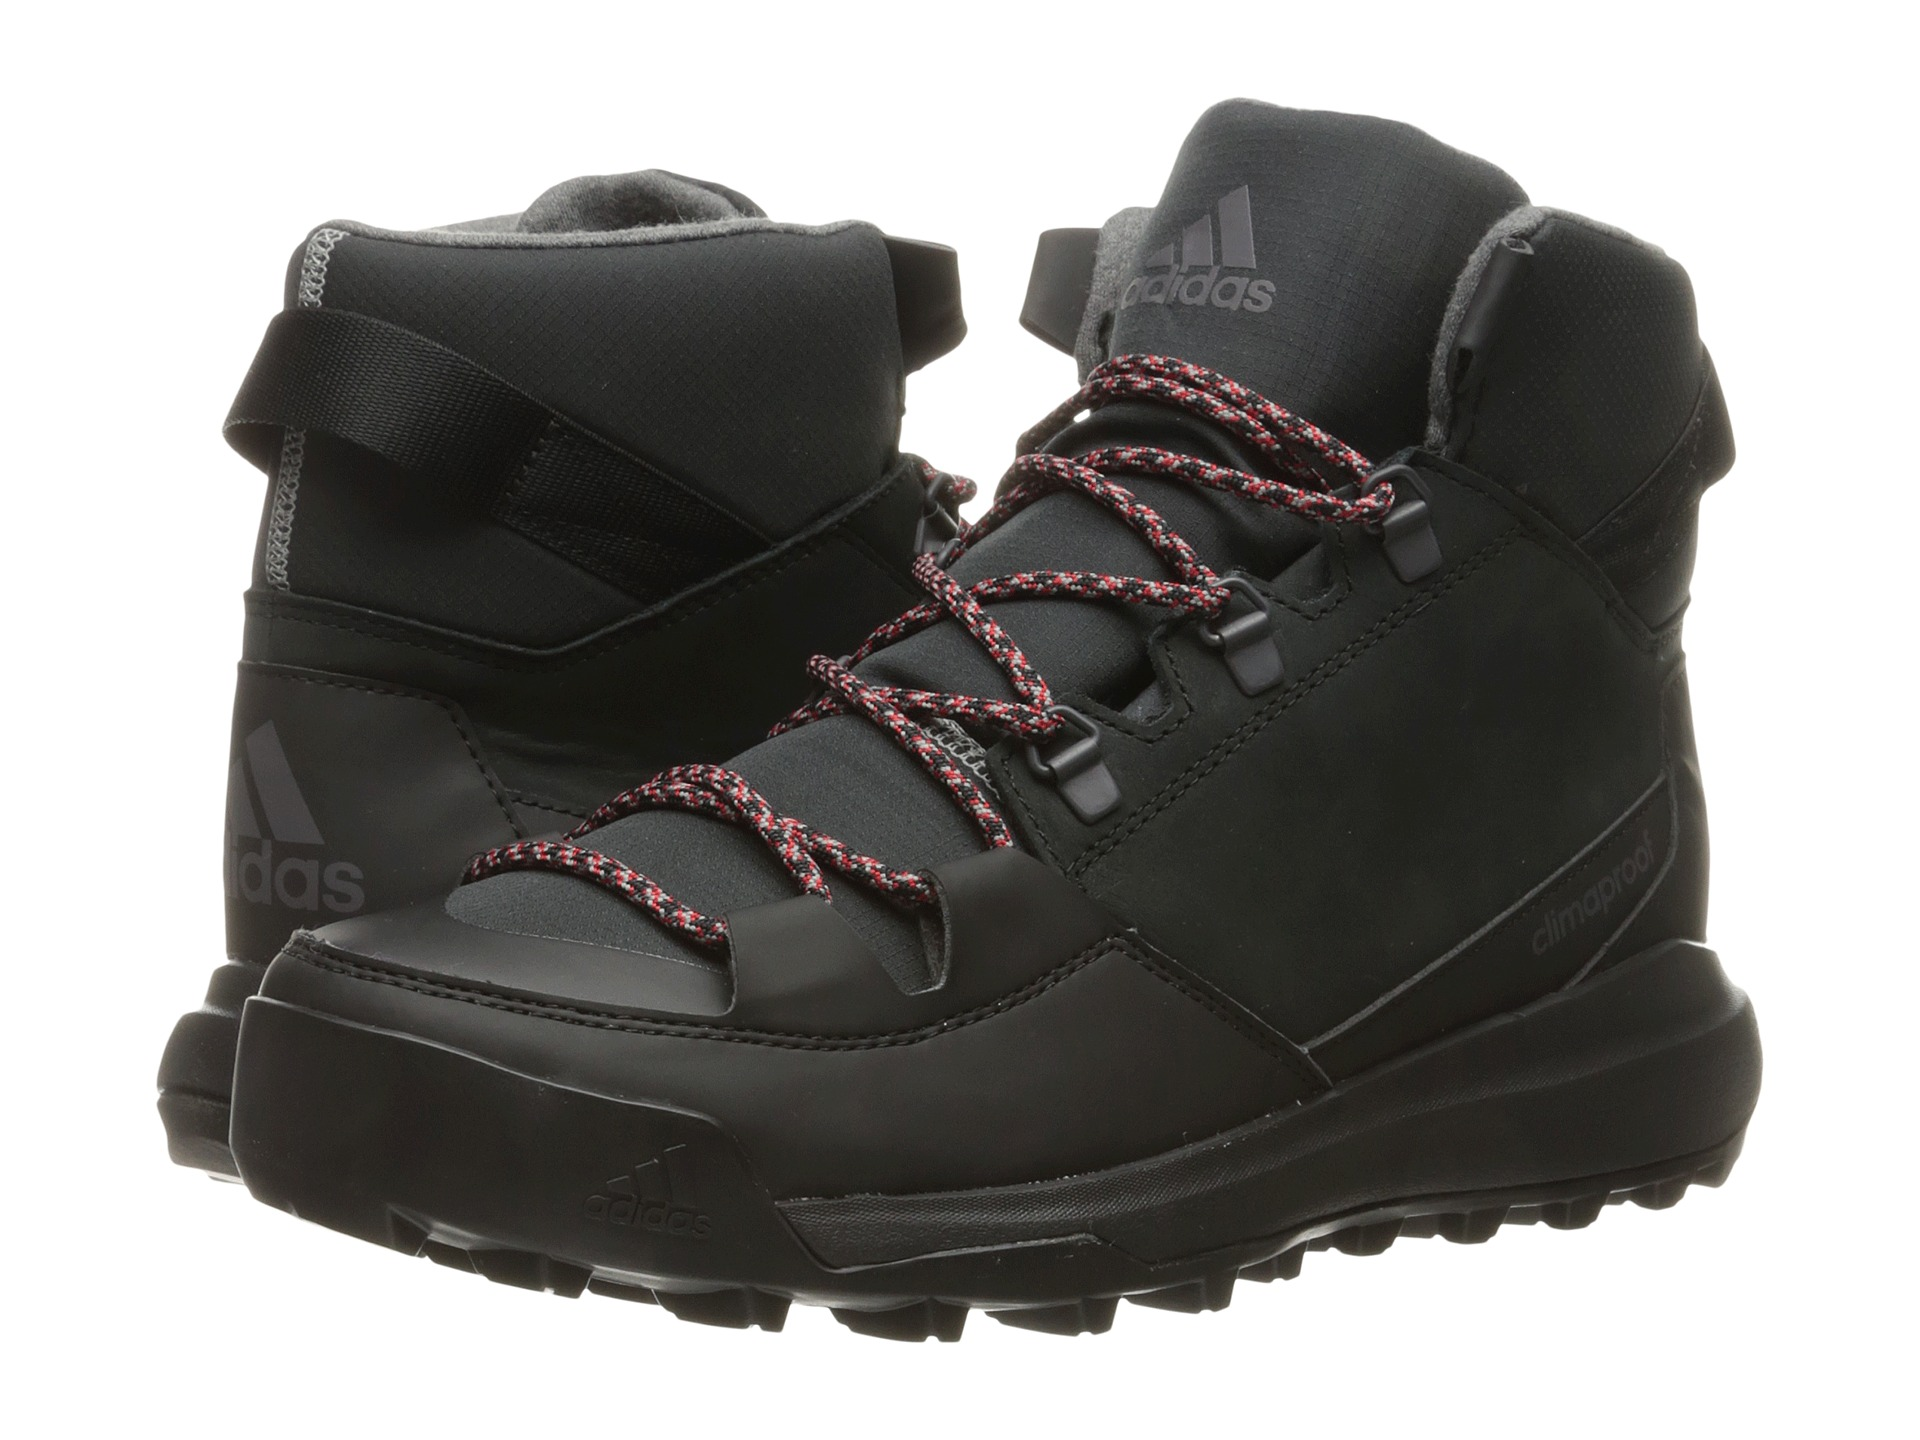 adidas Outdoor CW Winterpitch Mid CP Leather at 6pm.com